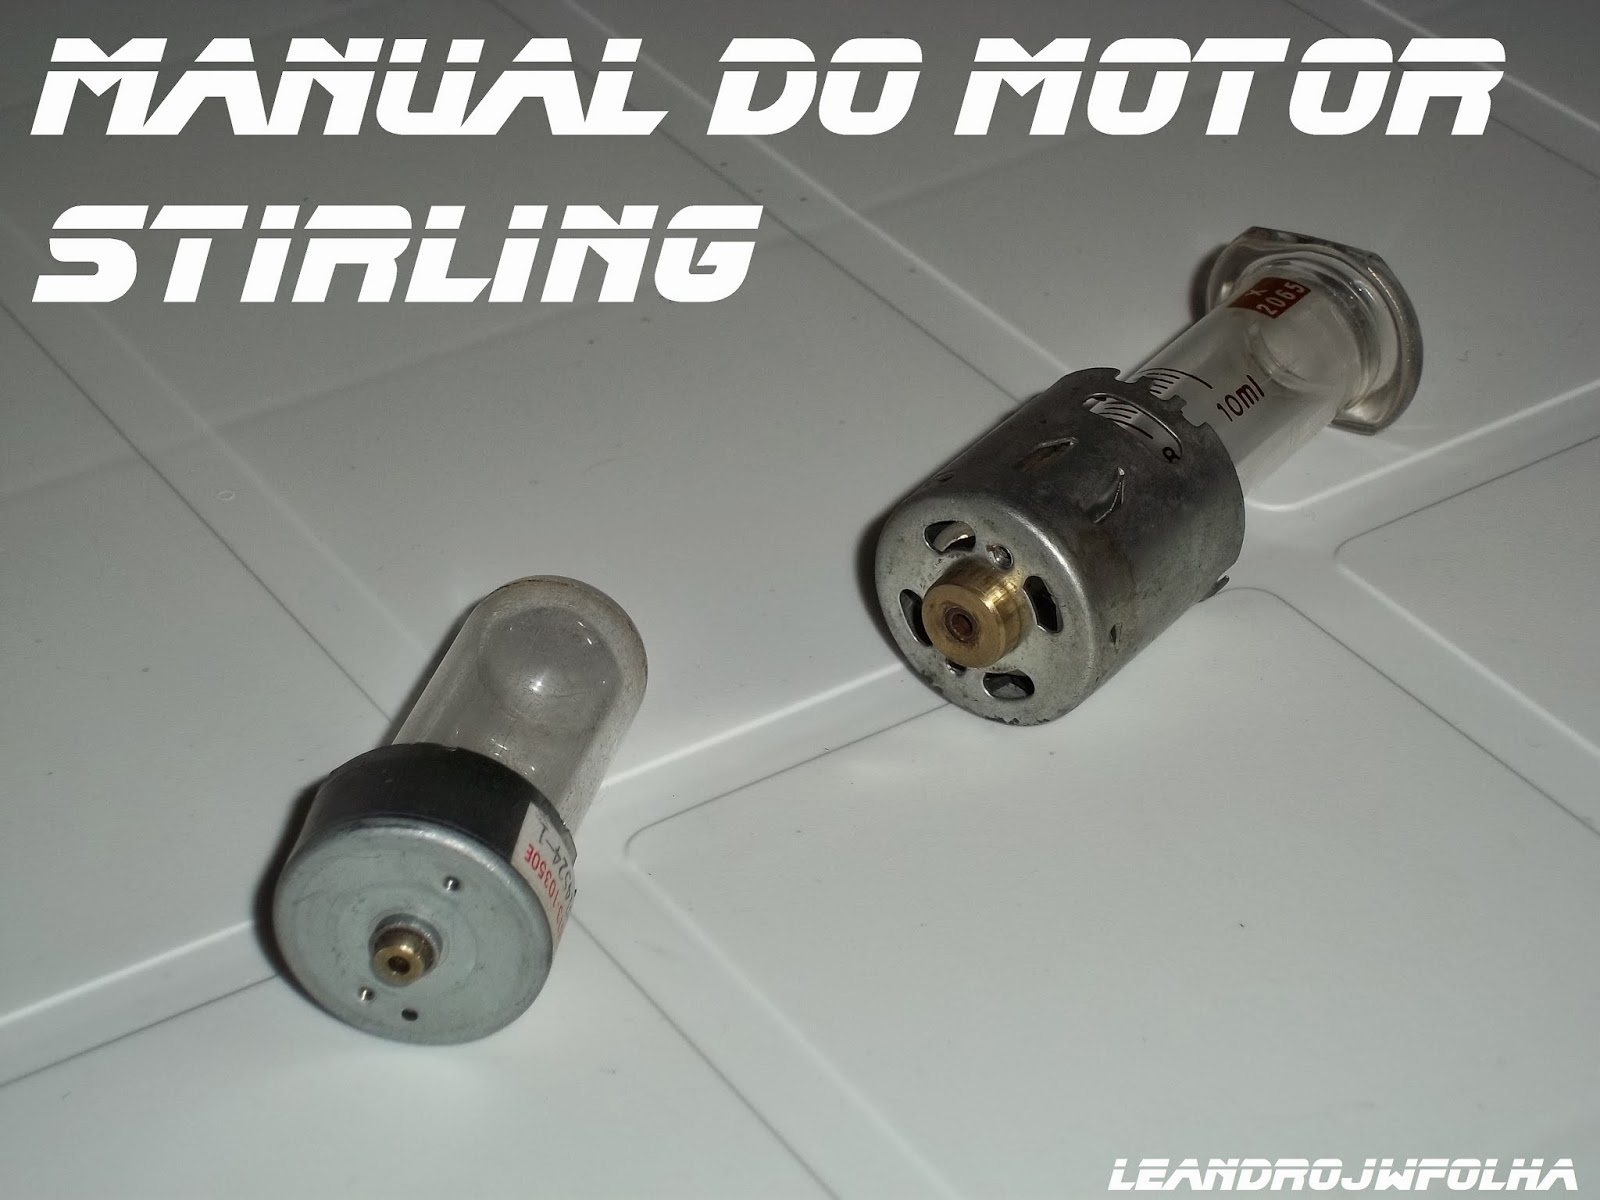 Manual do motor Stirling, carcaças de motor elétrico